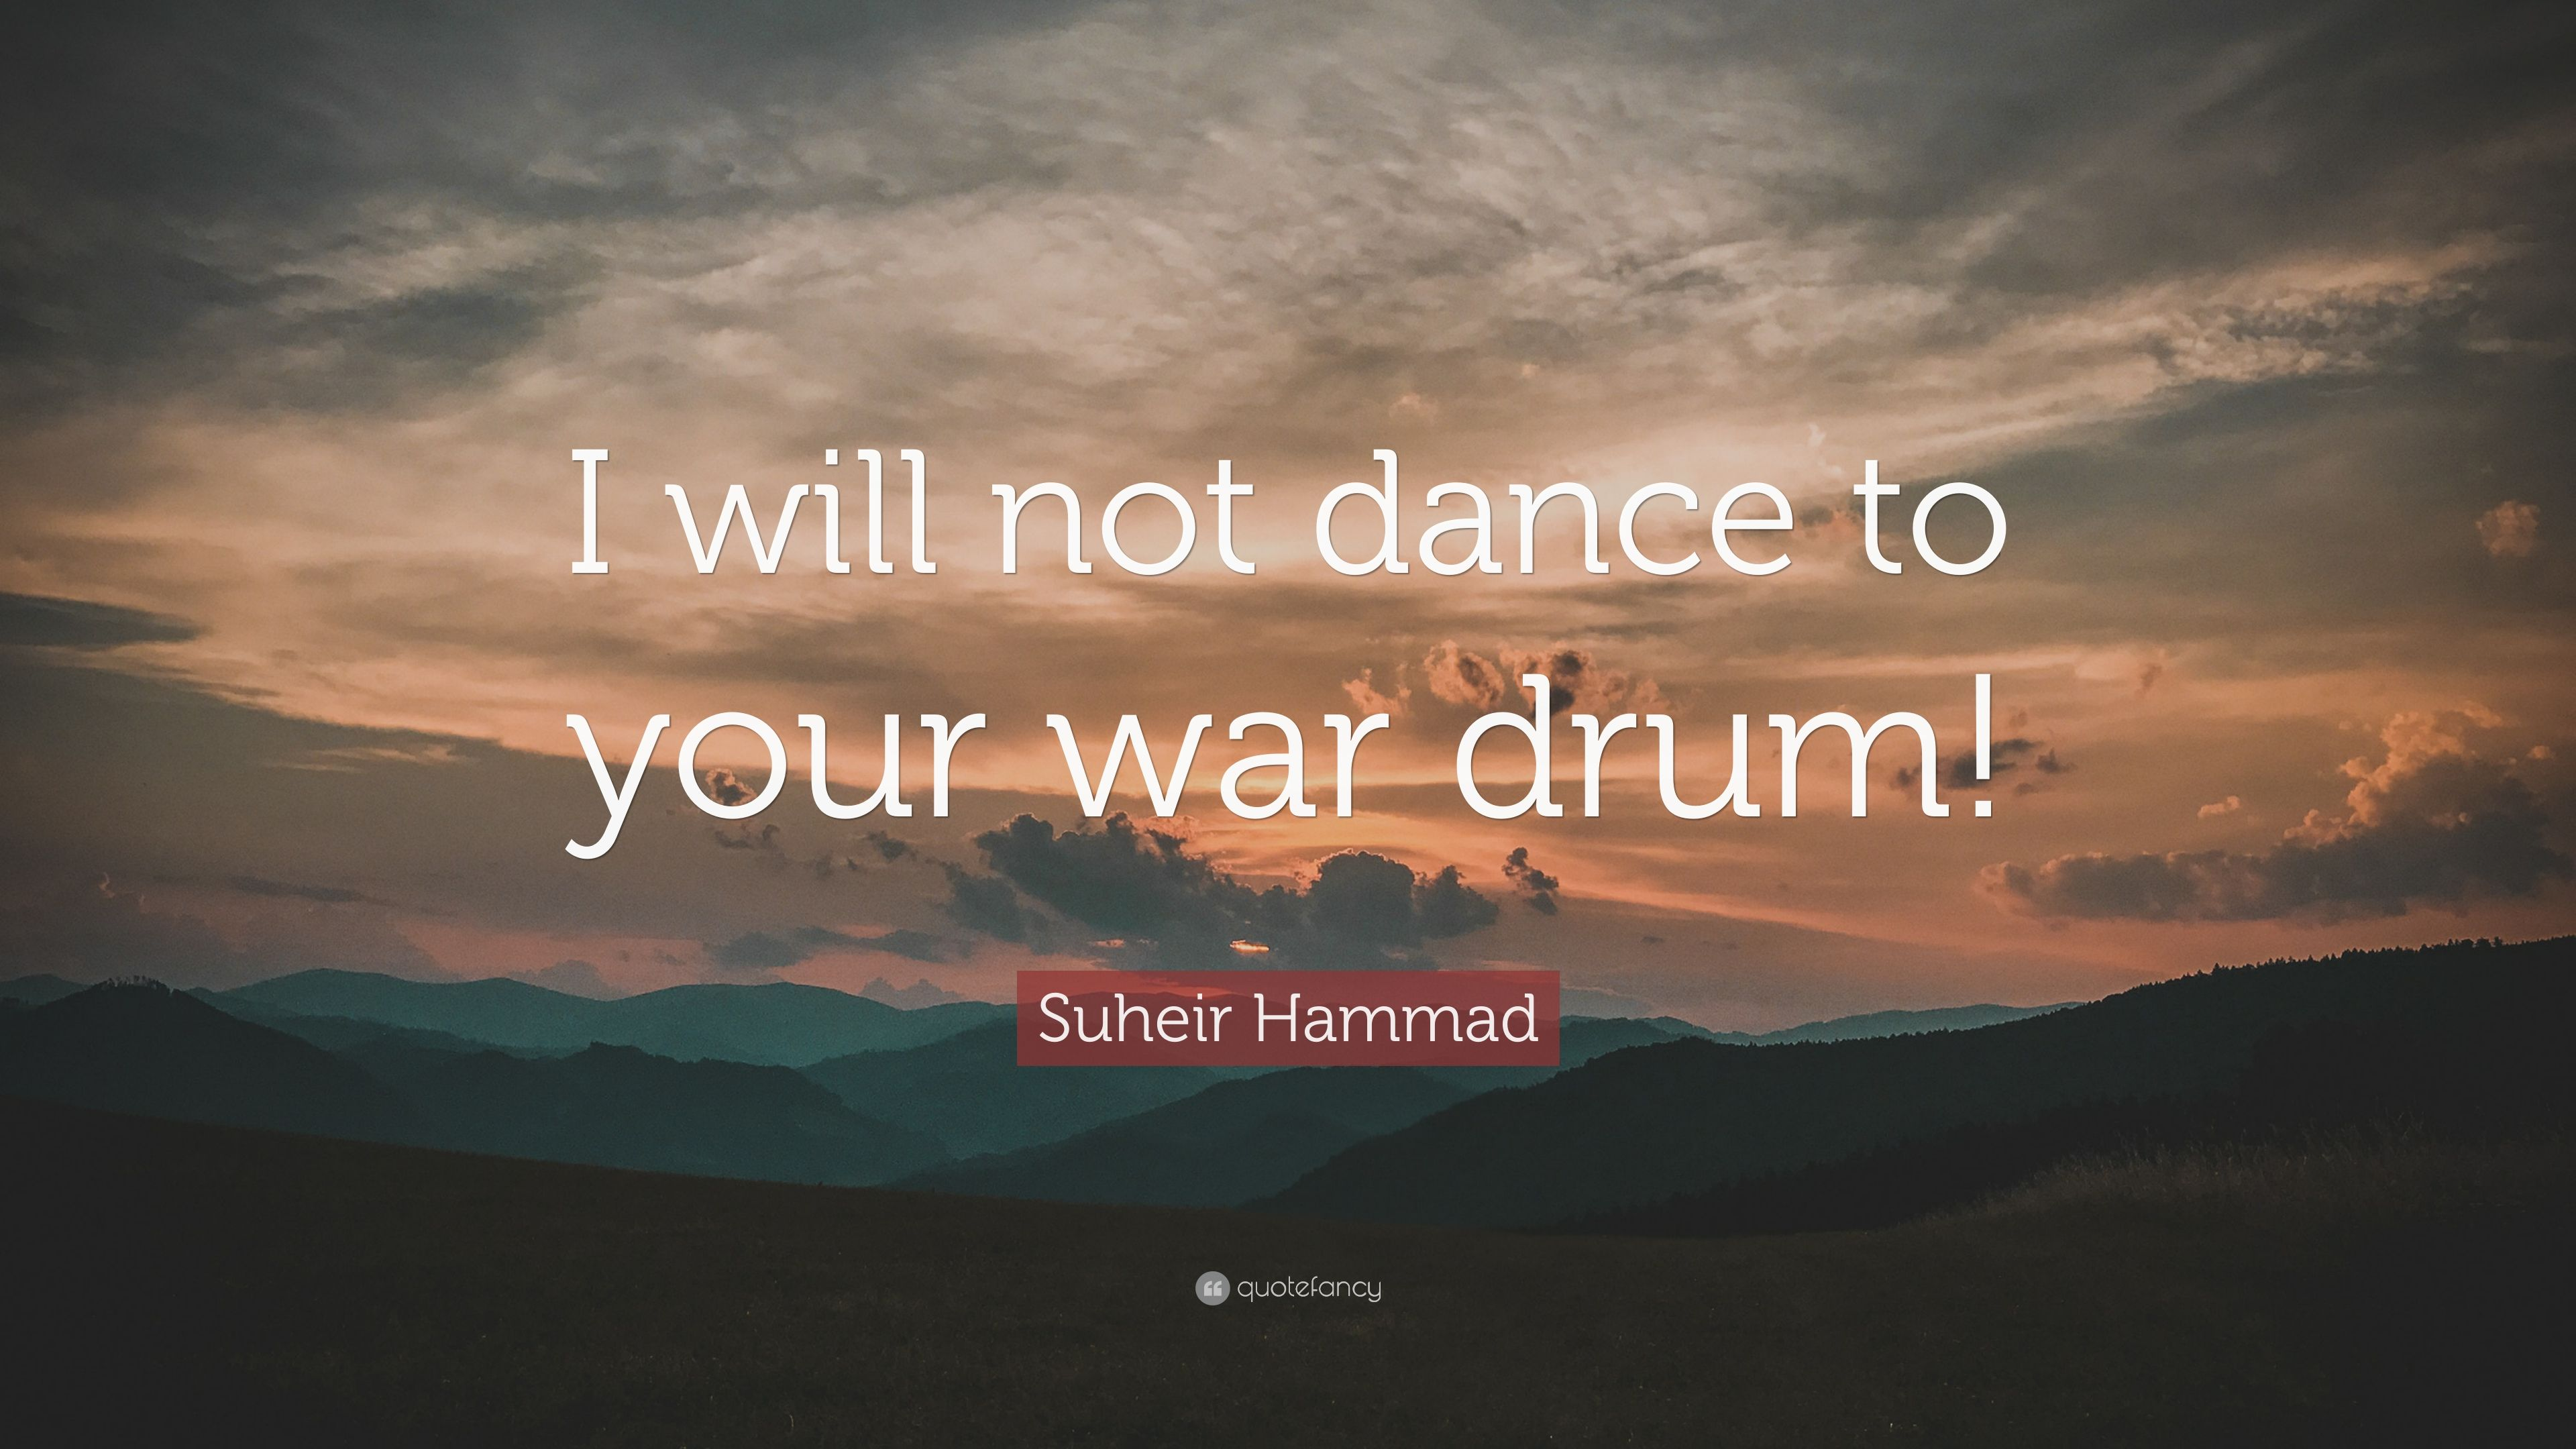 suheir hammad quote �i will not dance to your war drum